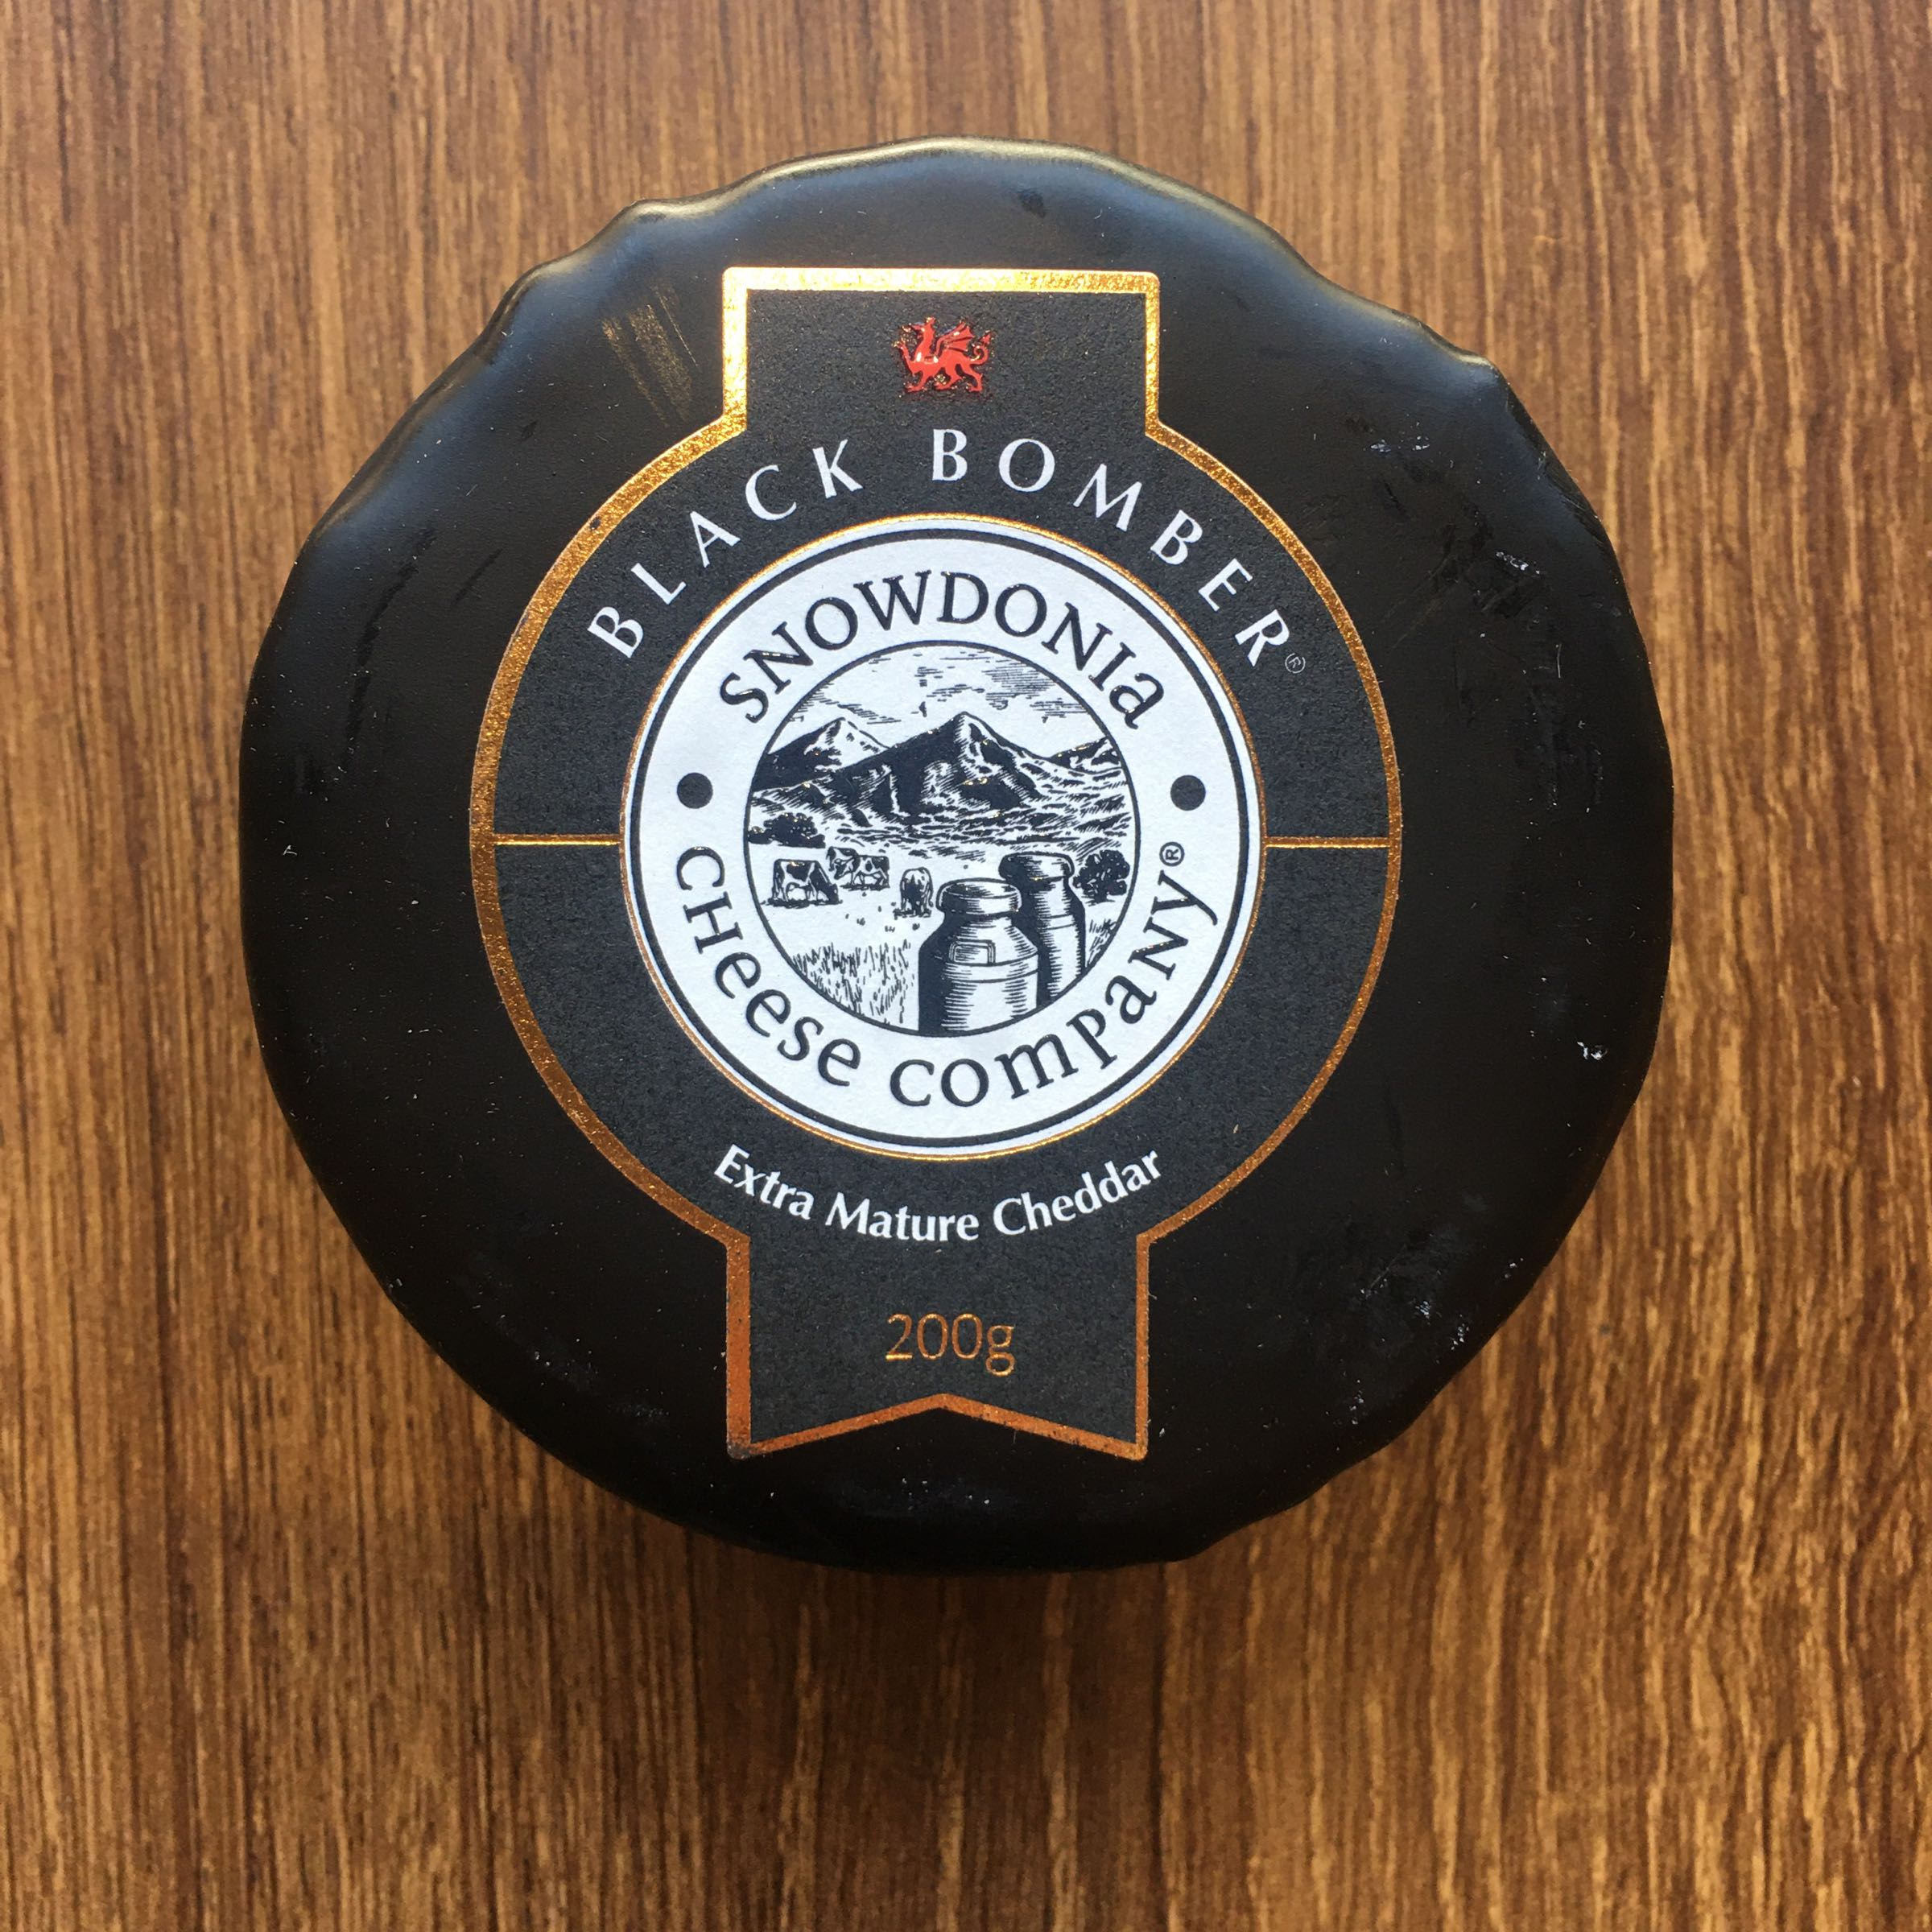 Black Bomber Snowdonia Waxed Cheese